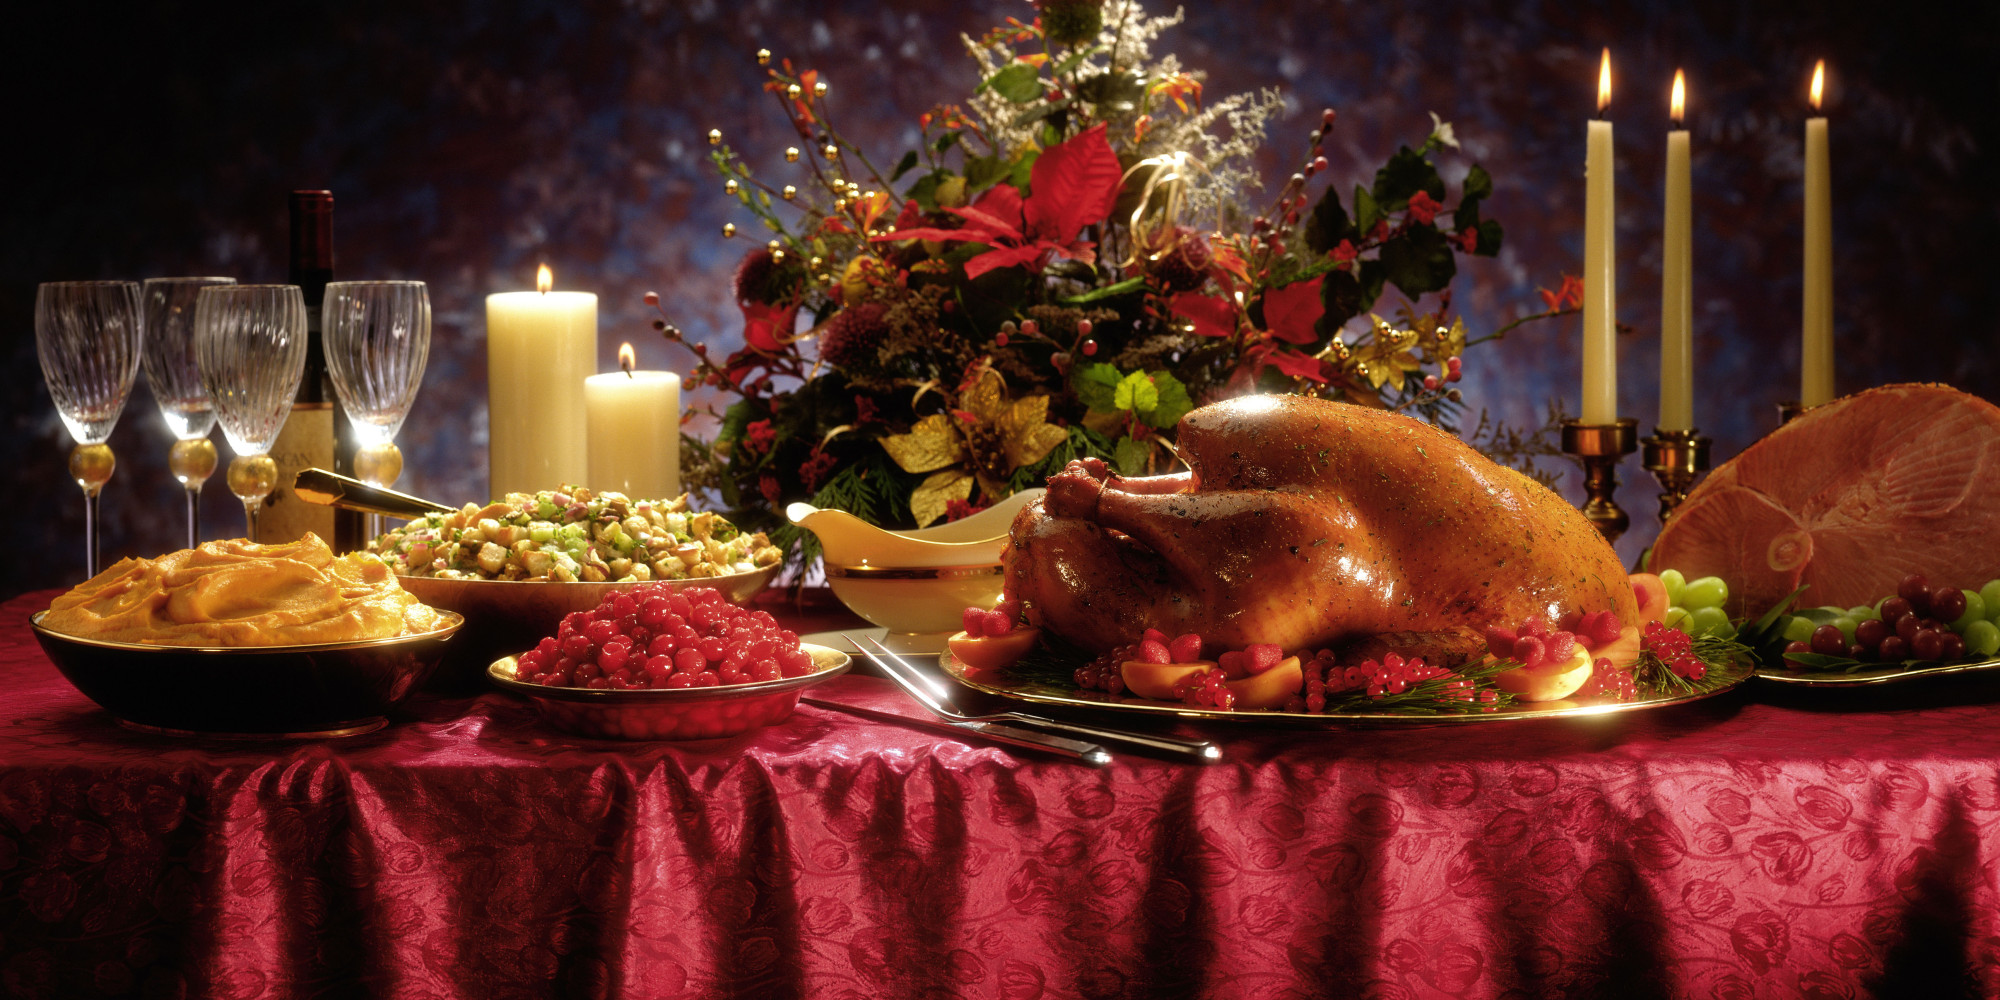 Weight loss ten tips for getting through the christmas for Christmas eve food ideas uk